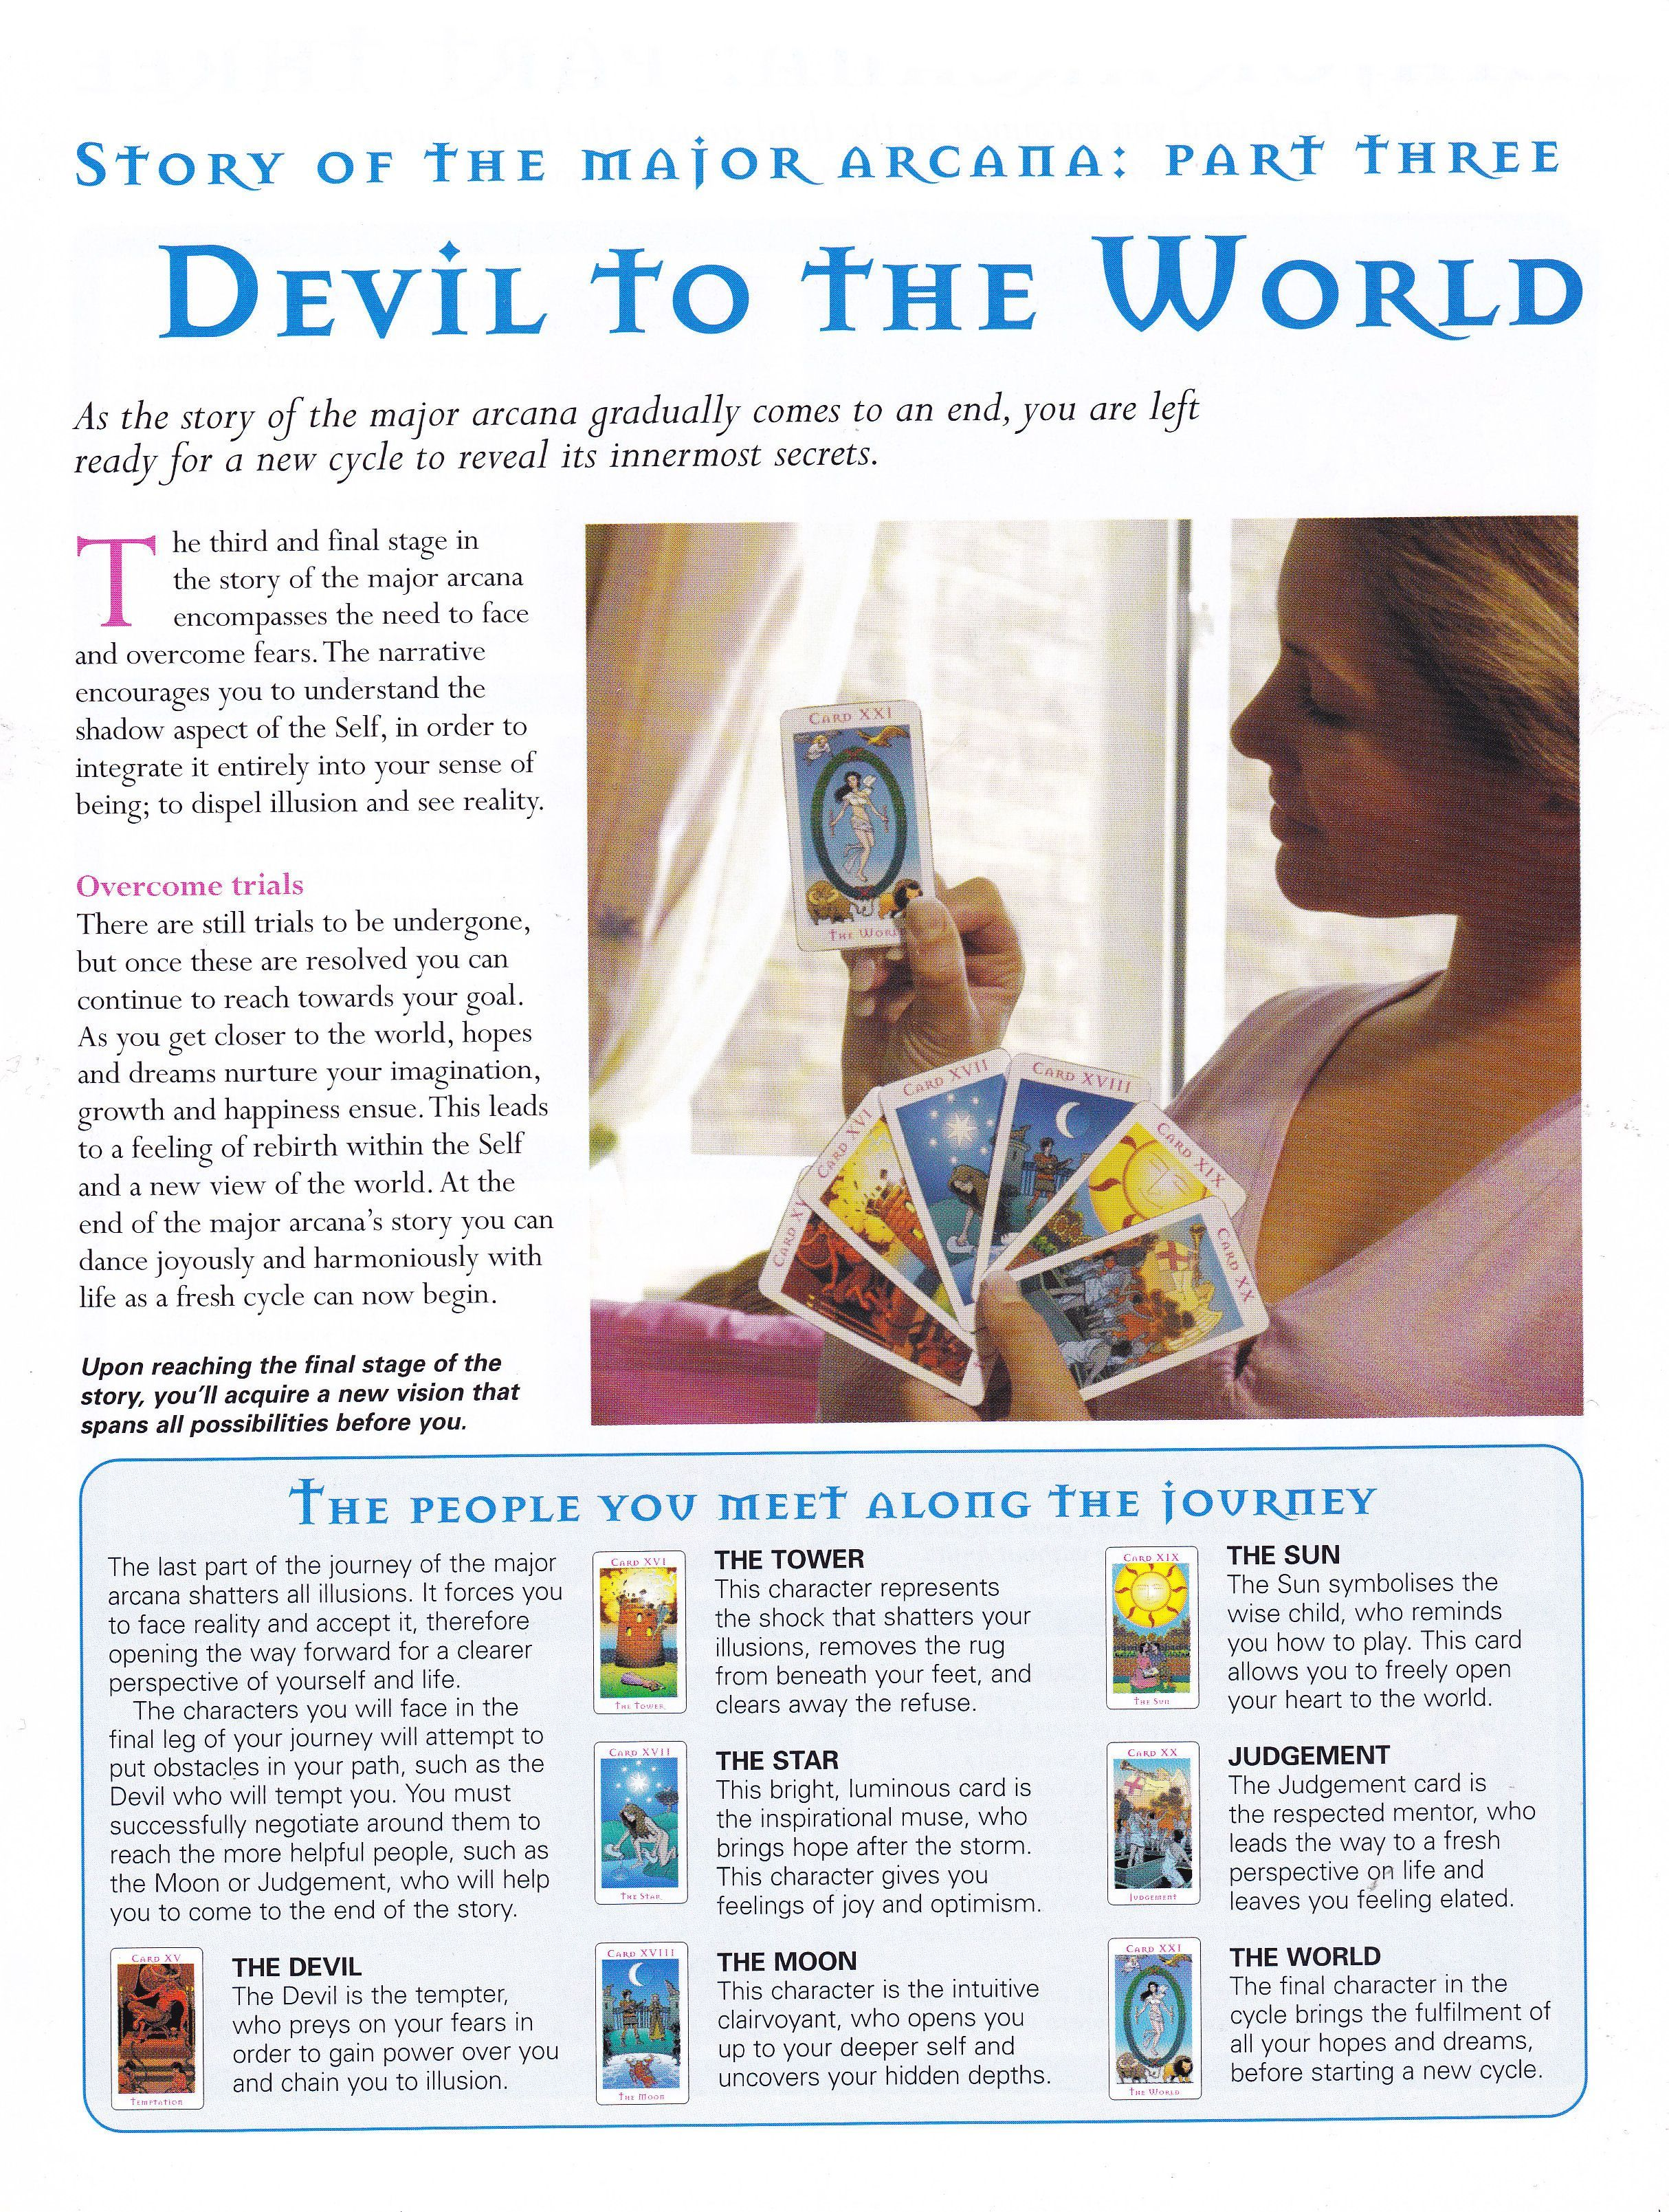 Learning tarot as a game tarot meanings tarot learning